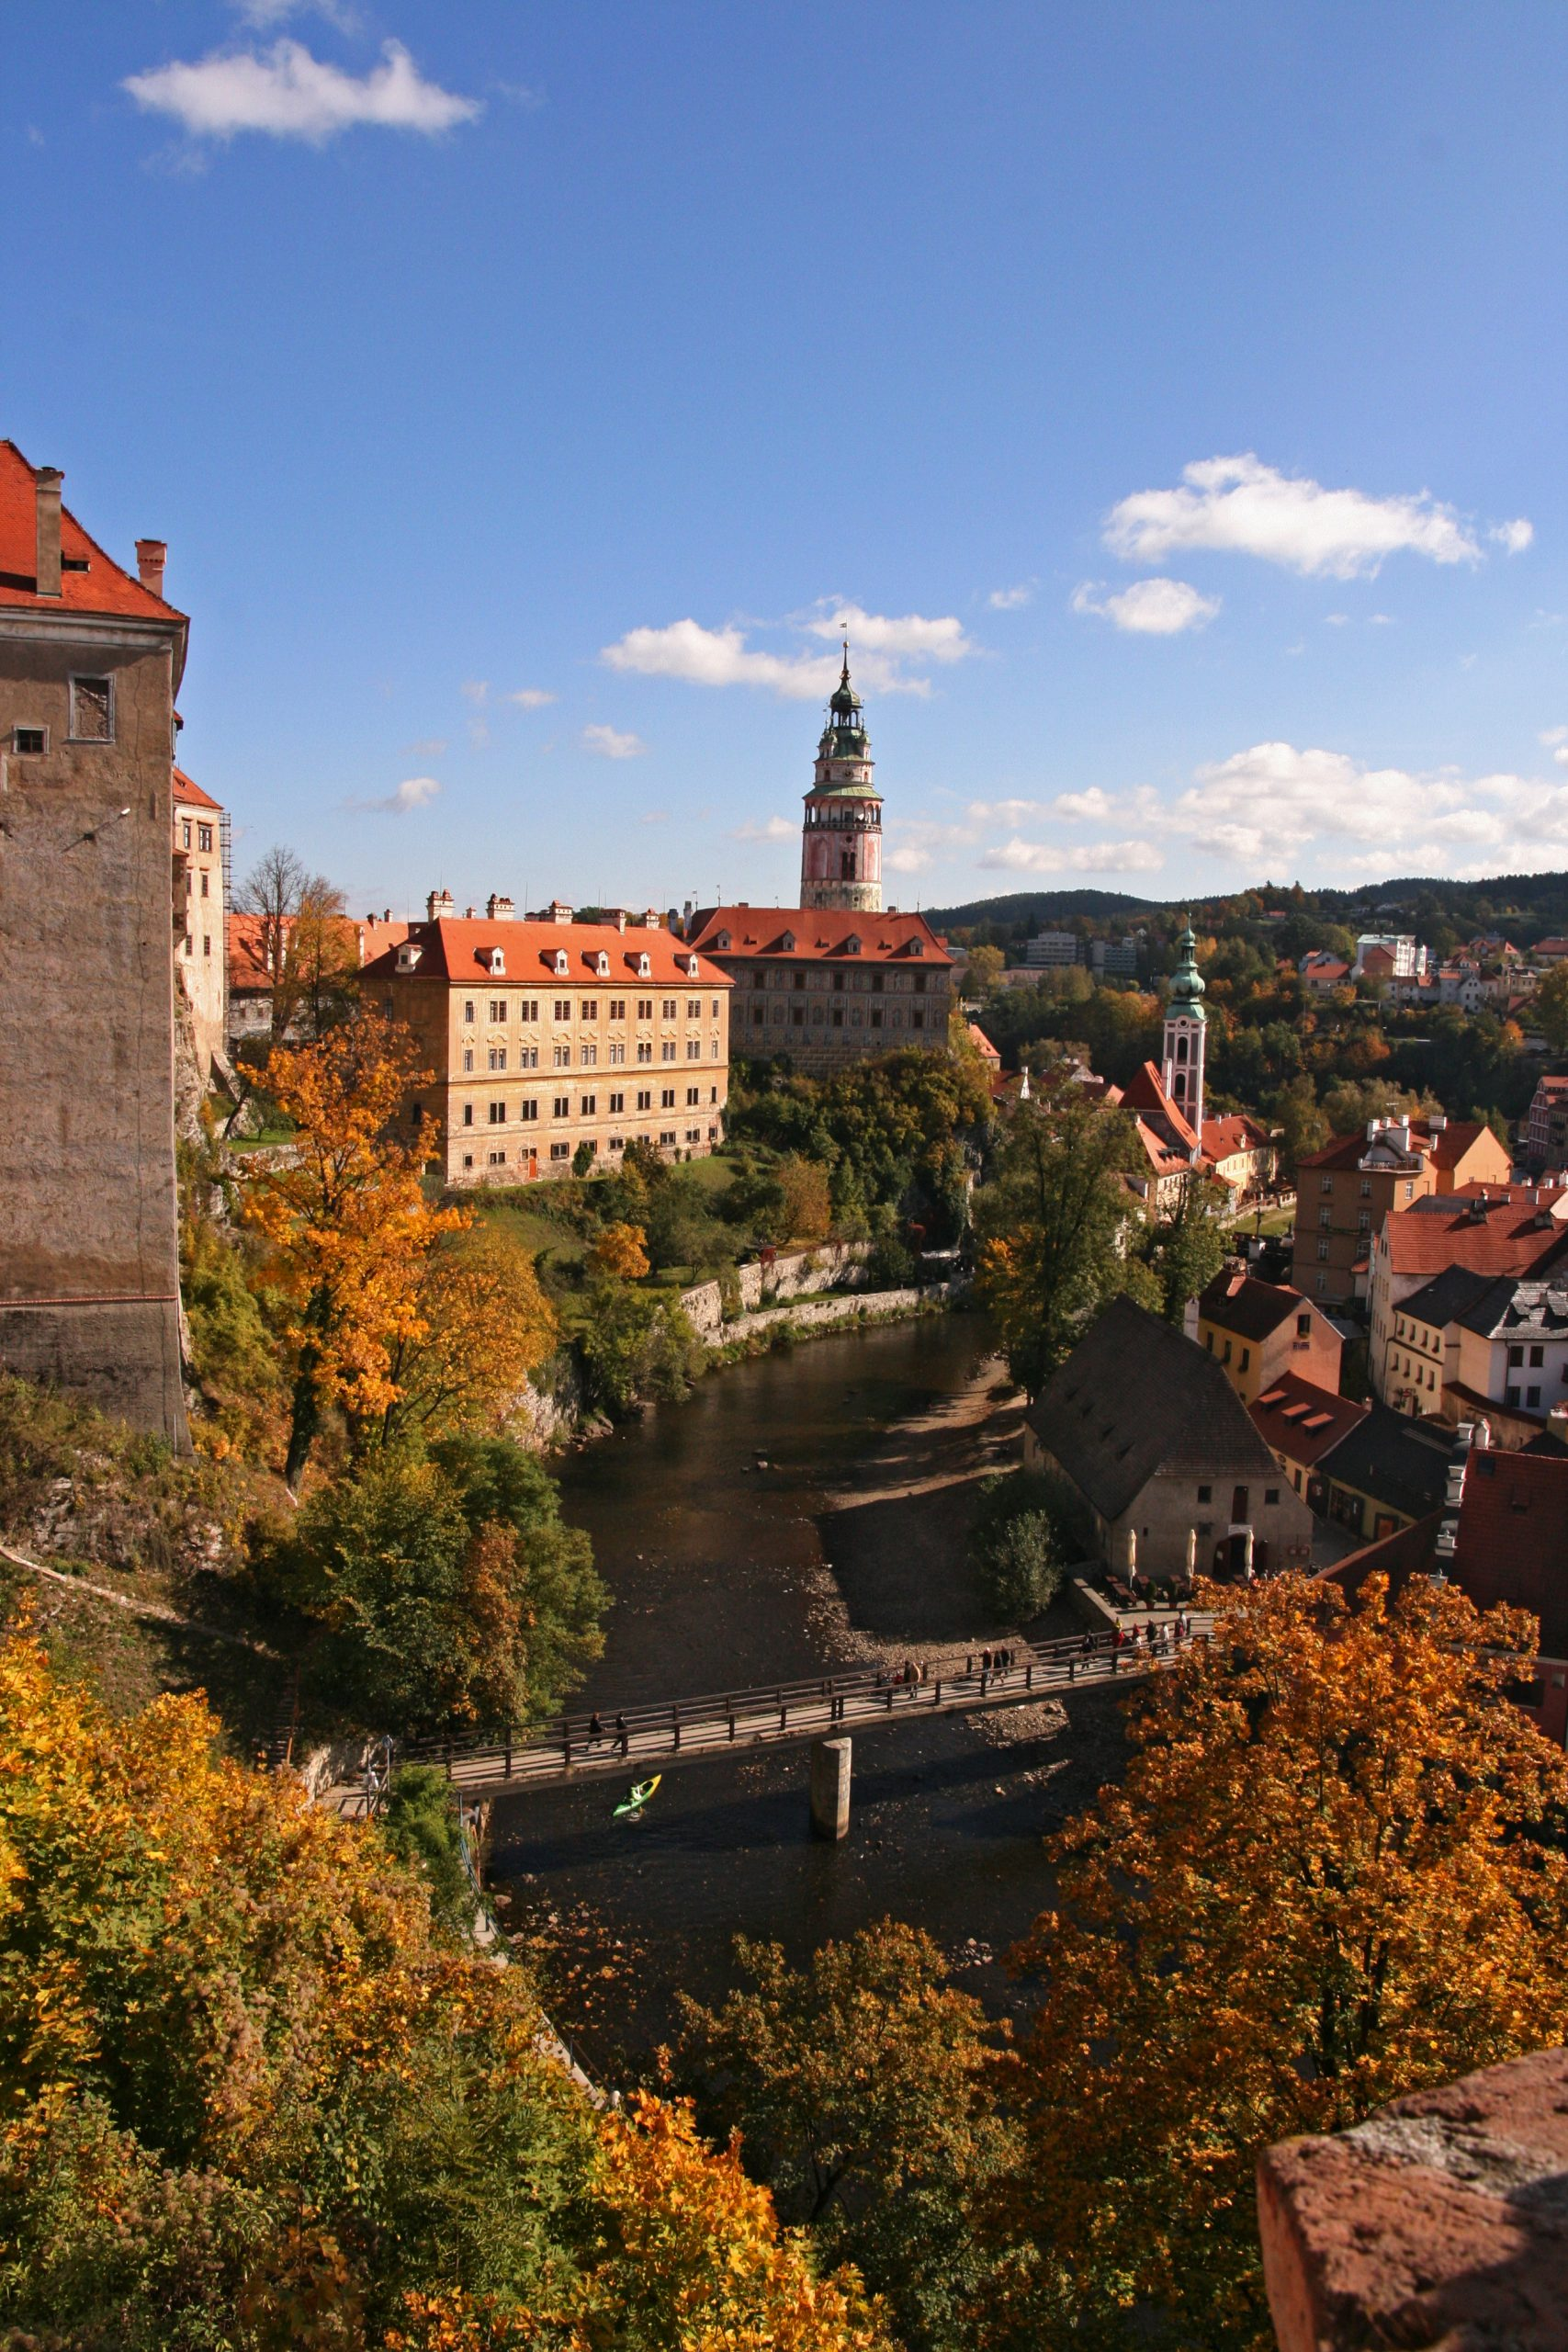 Cesky Krumlov Castle in the fall surrounded by trees